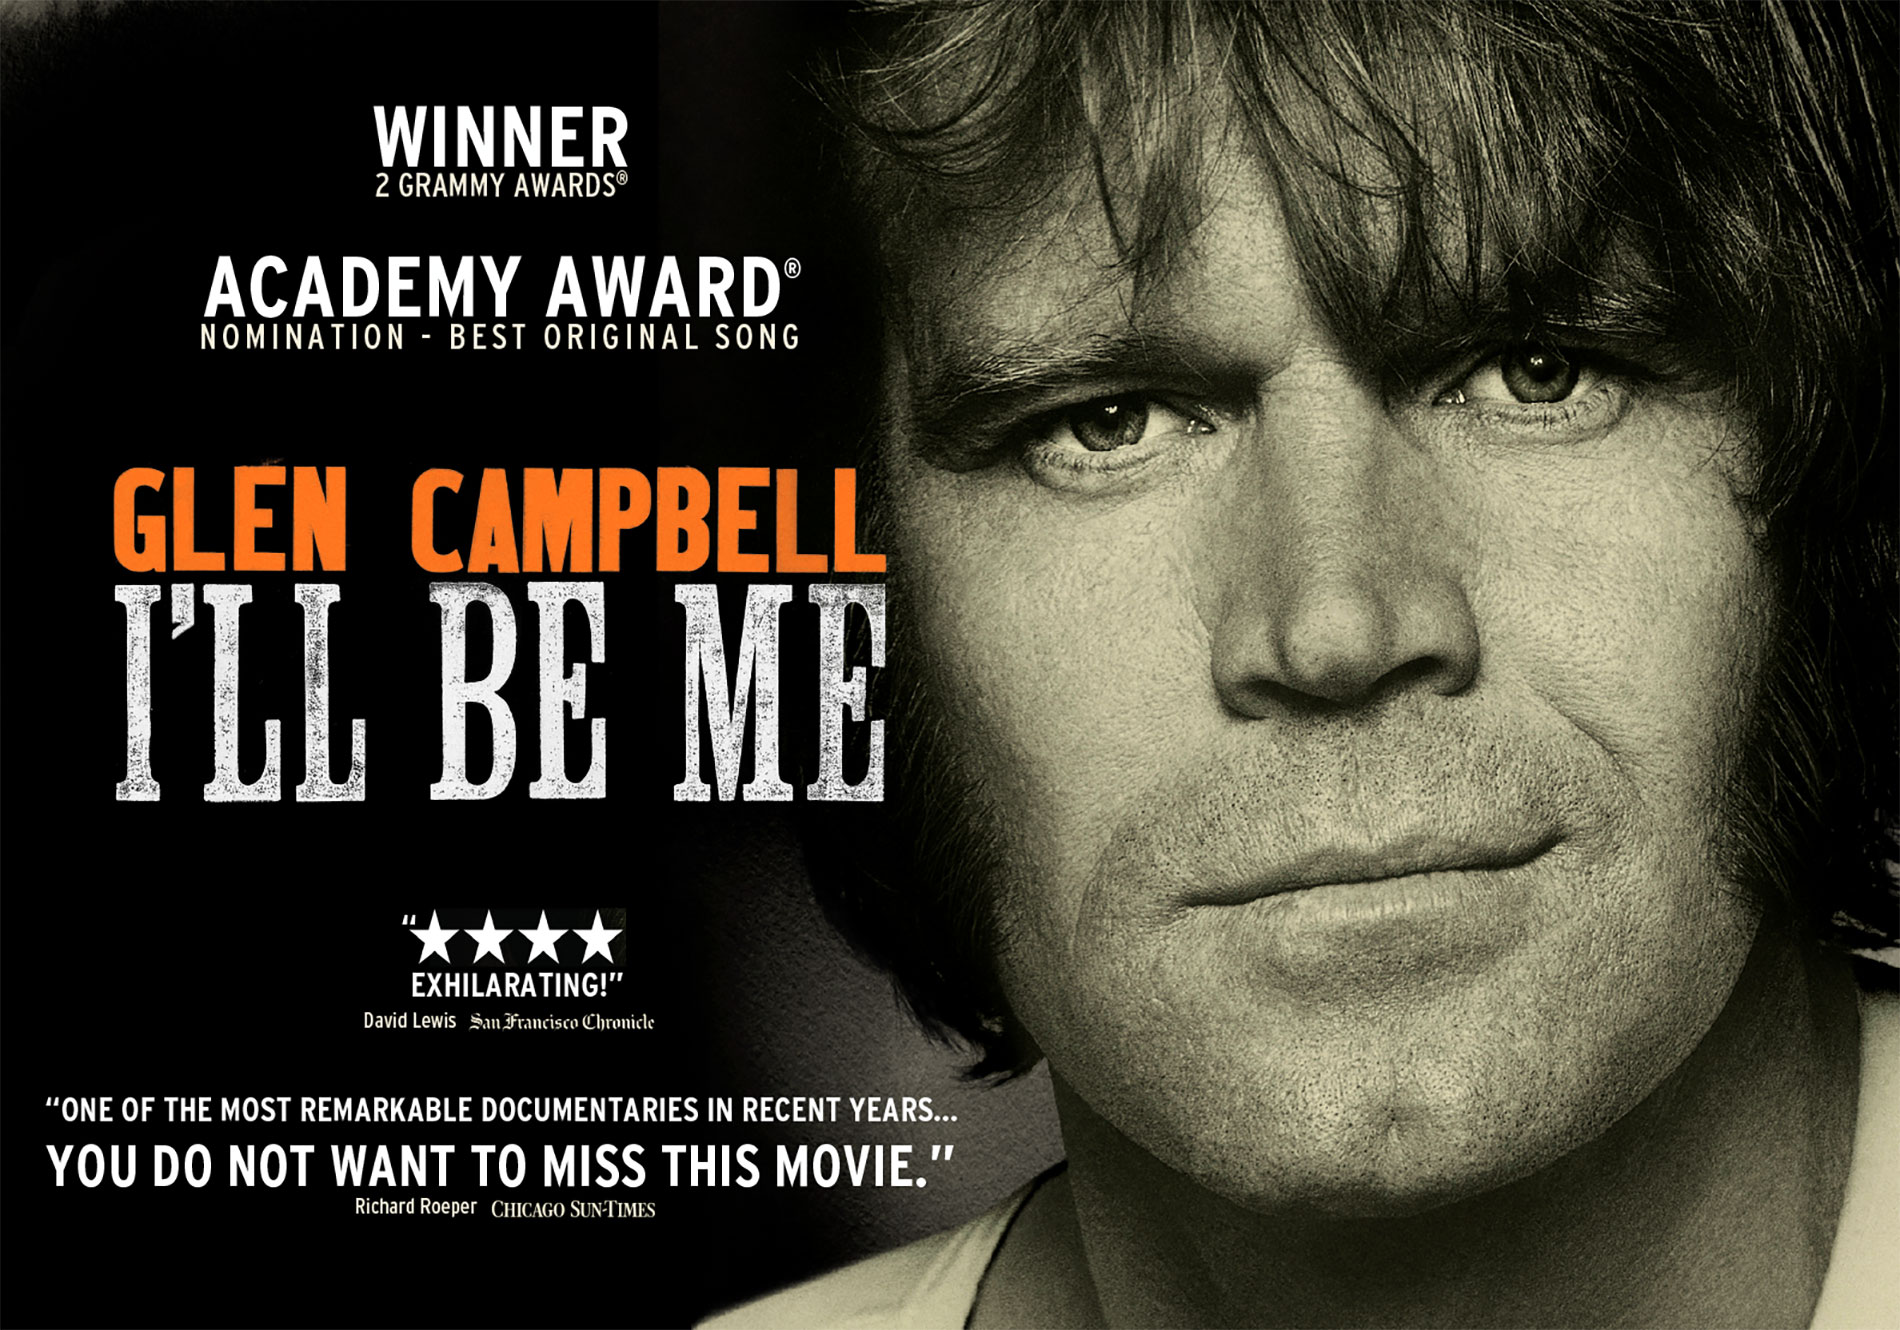 Glen Campbell: I'll Be Me movie cover